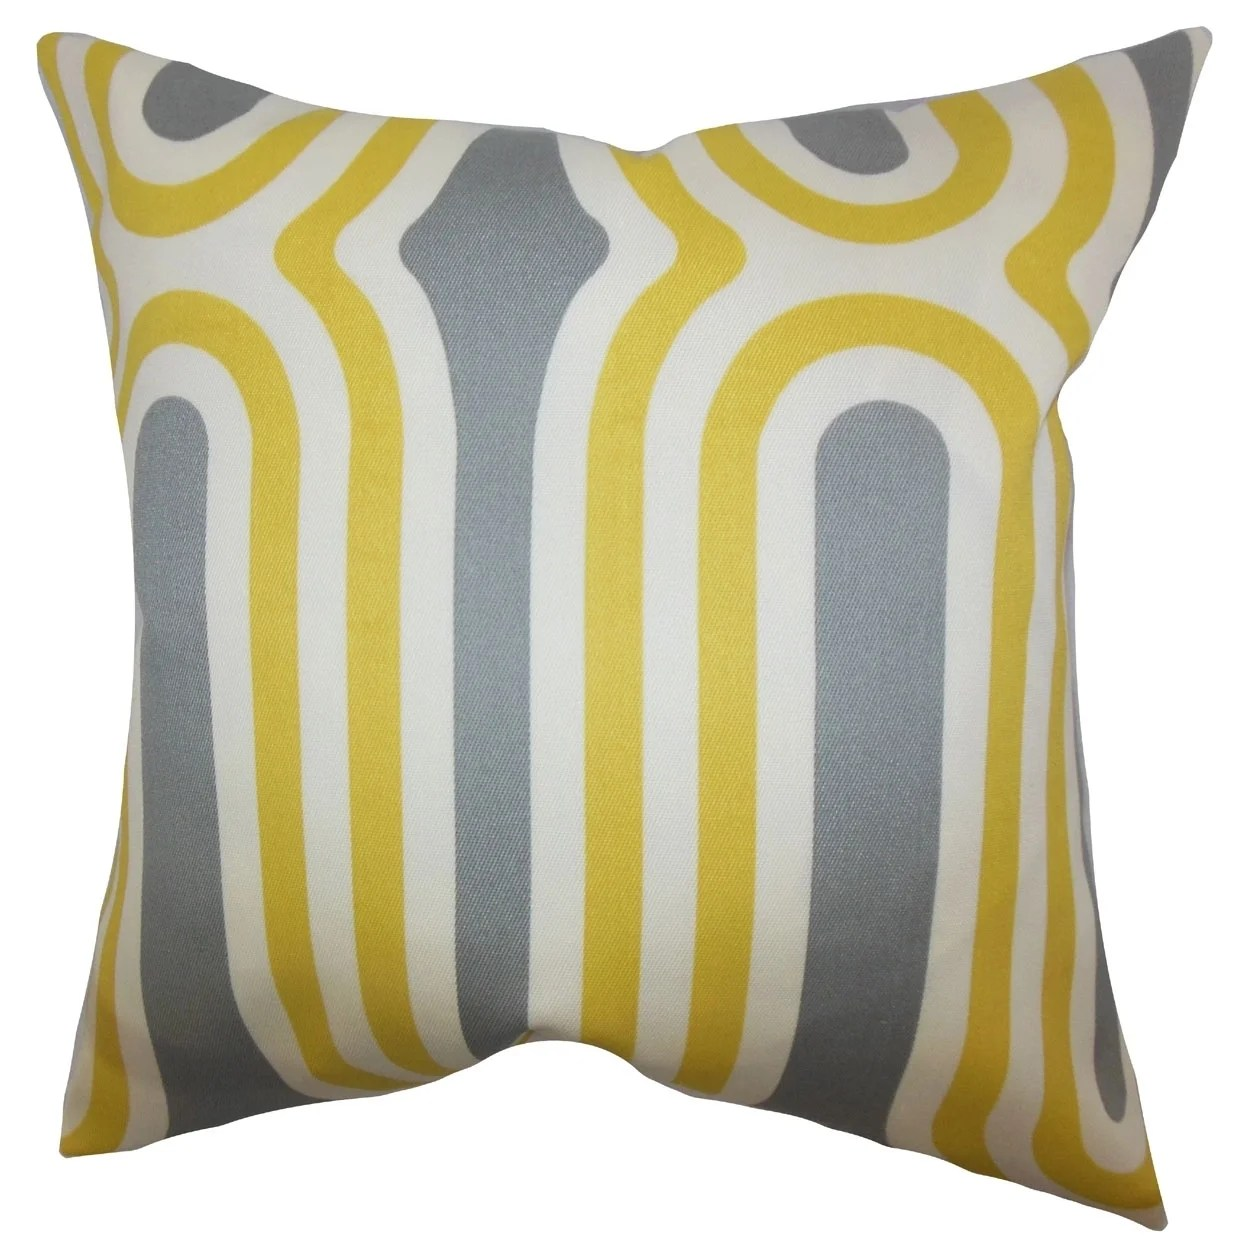 Persis Geometric Feather and Down Filled Throw Pillow Yellow